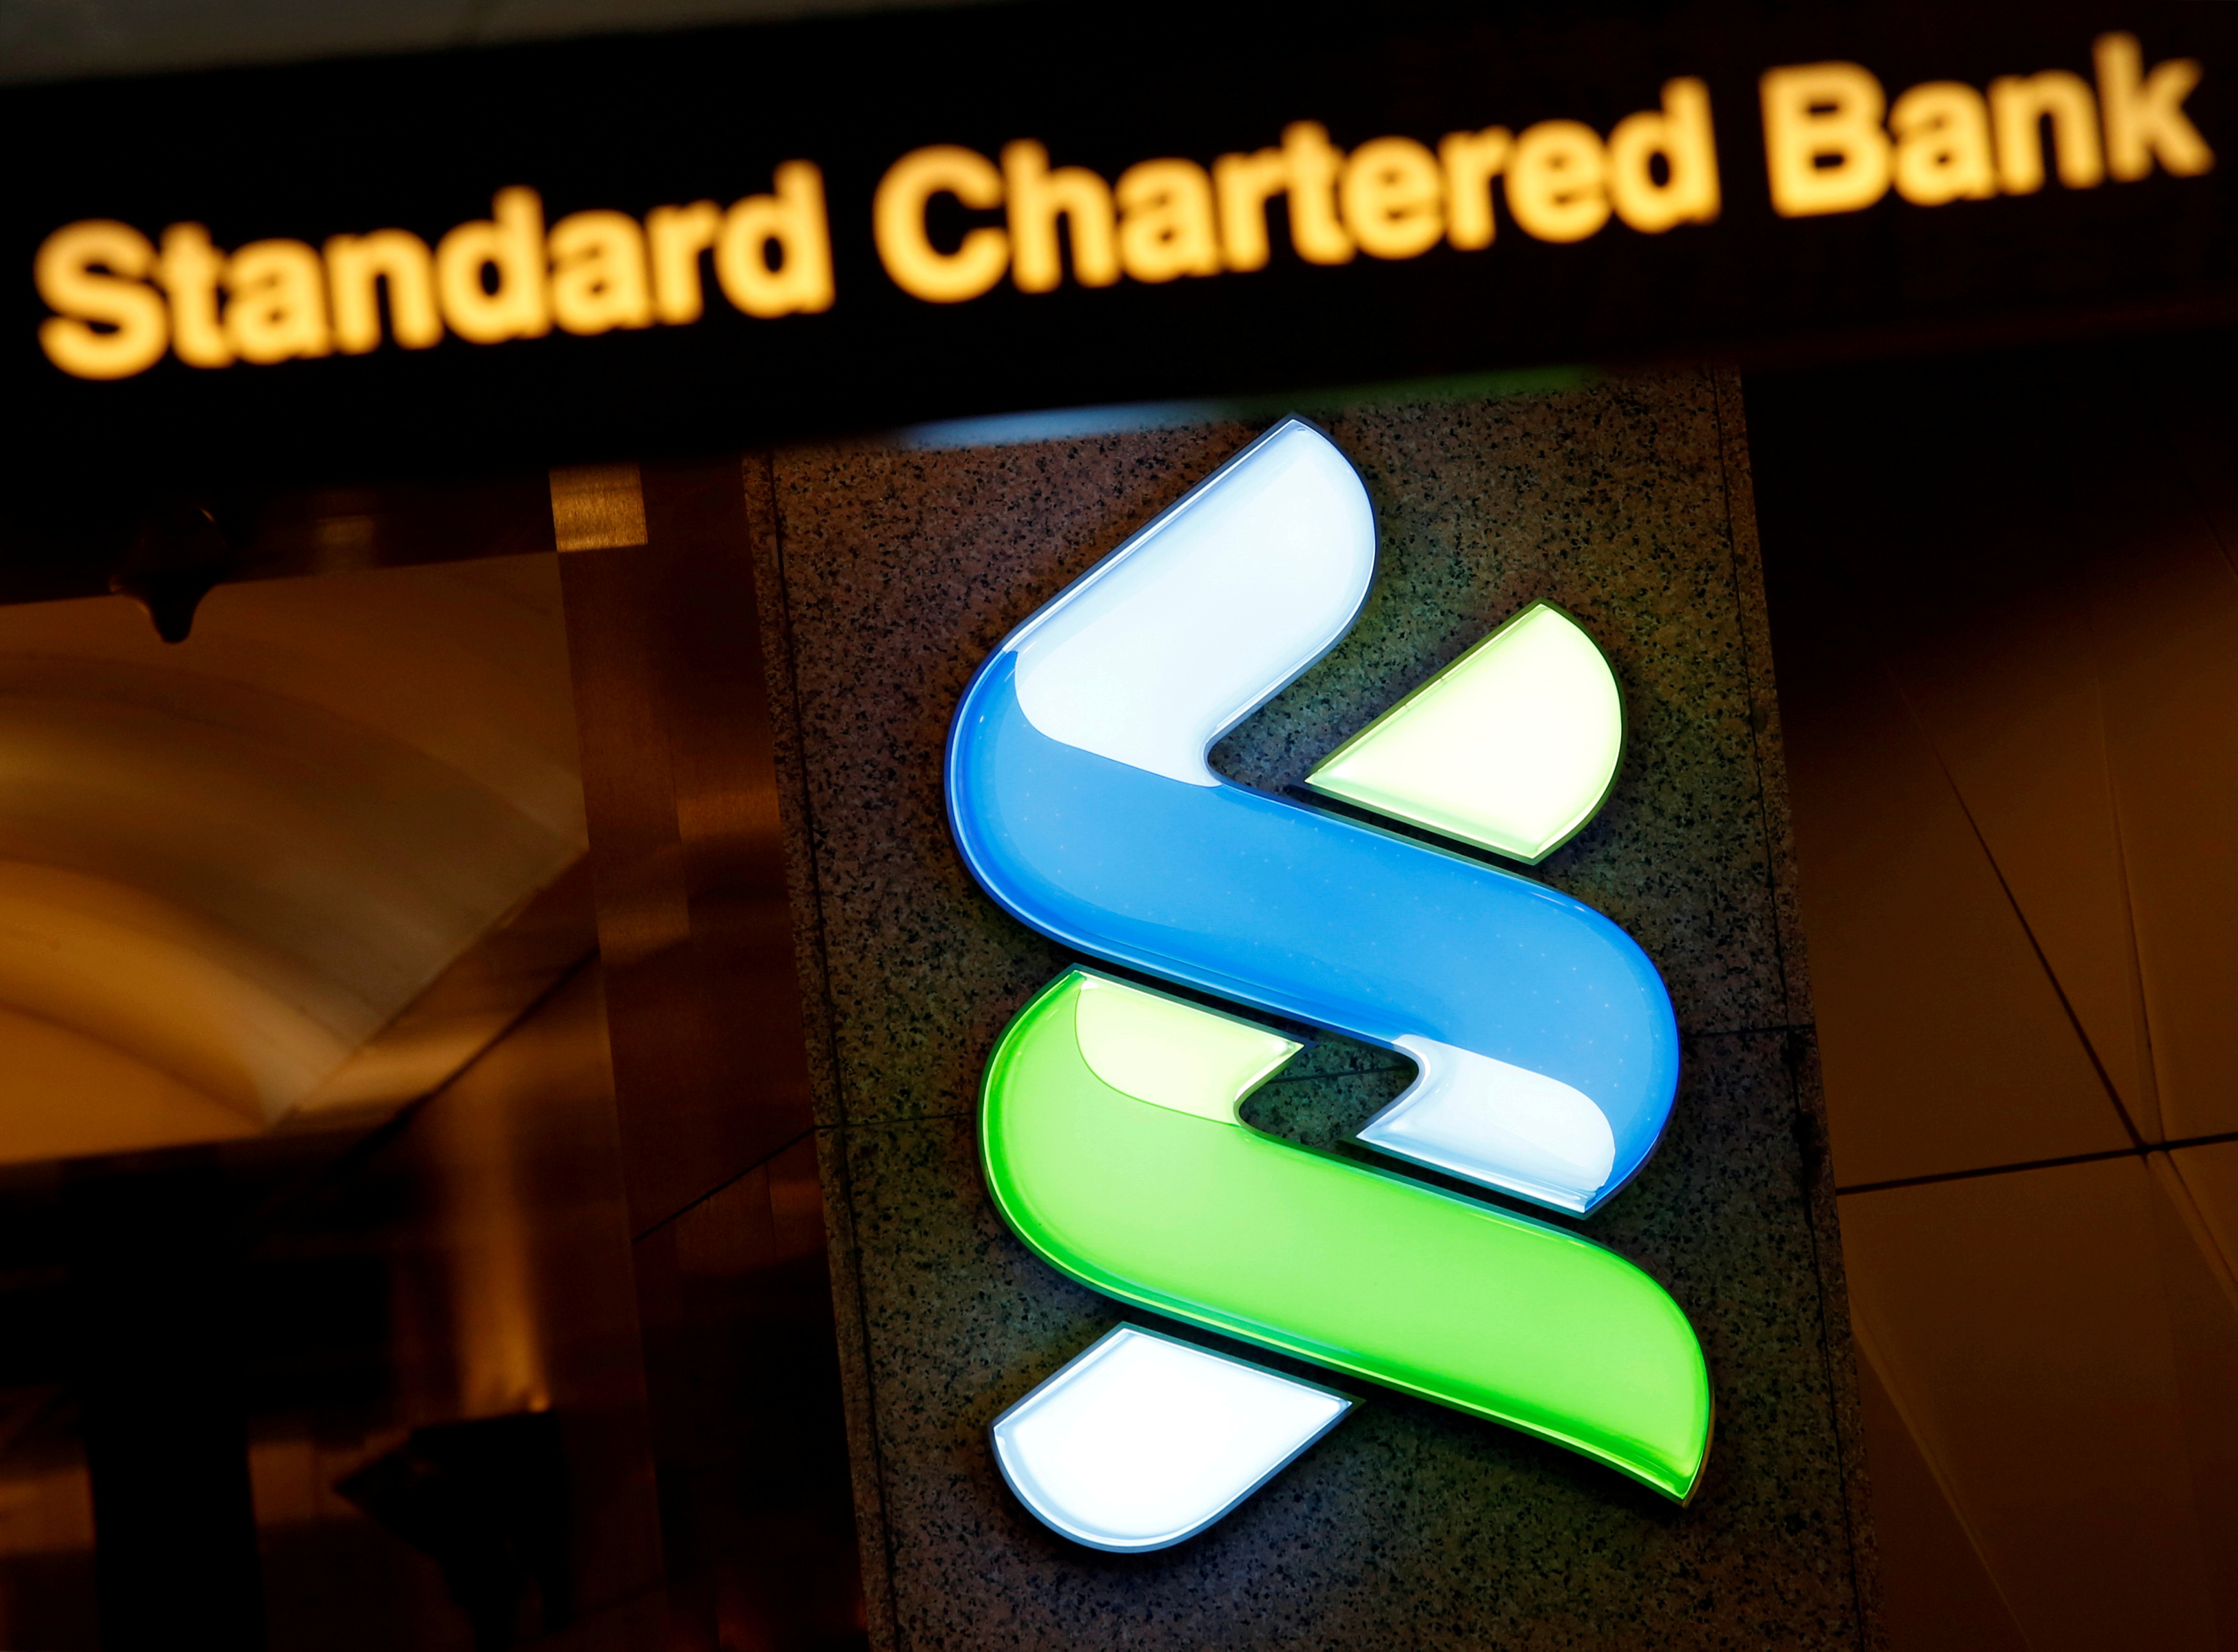 A logo of Standard Chartered is displayed at its main branch in Hong Kong, China, Aug. 1, 2017. REUTERS/Bobby Yip/File Photo